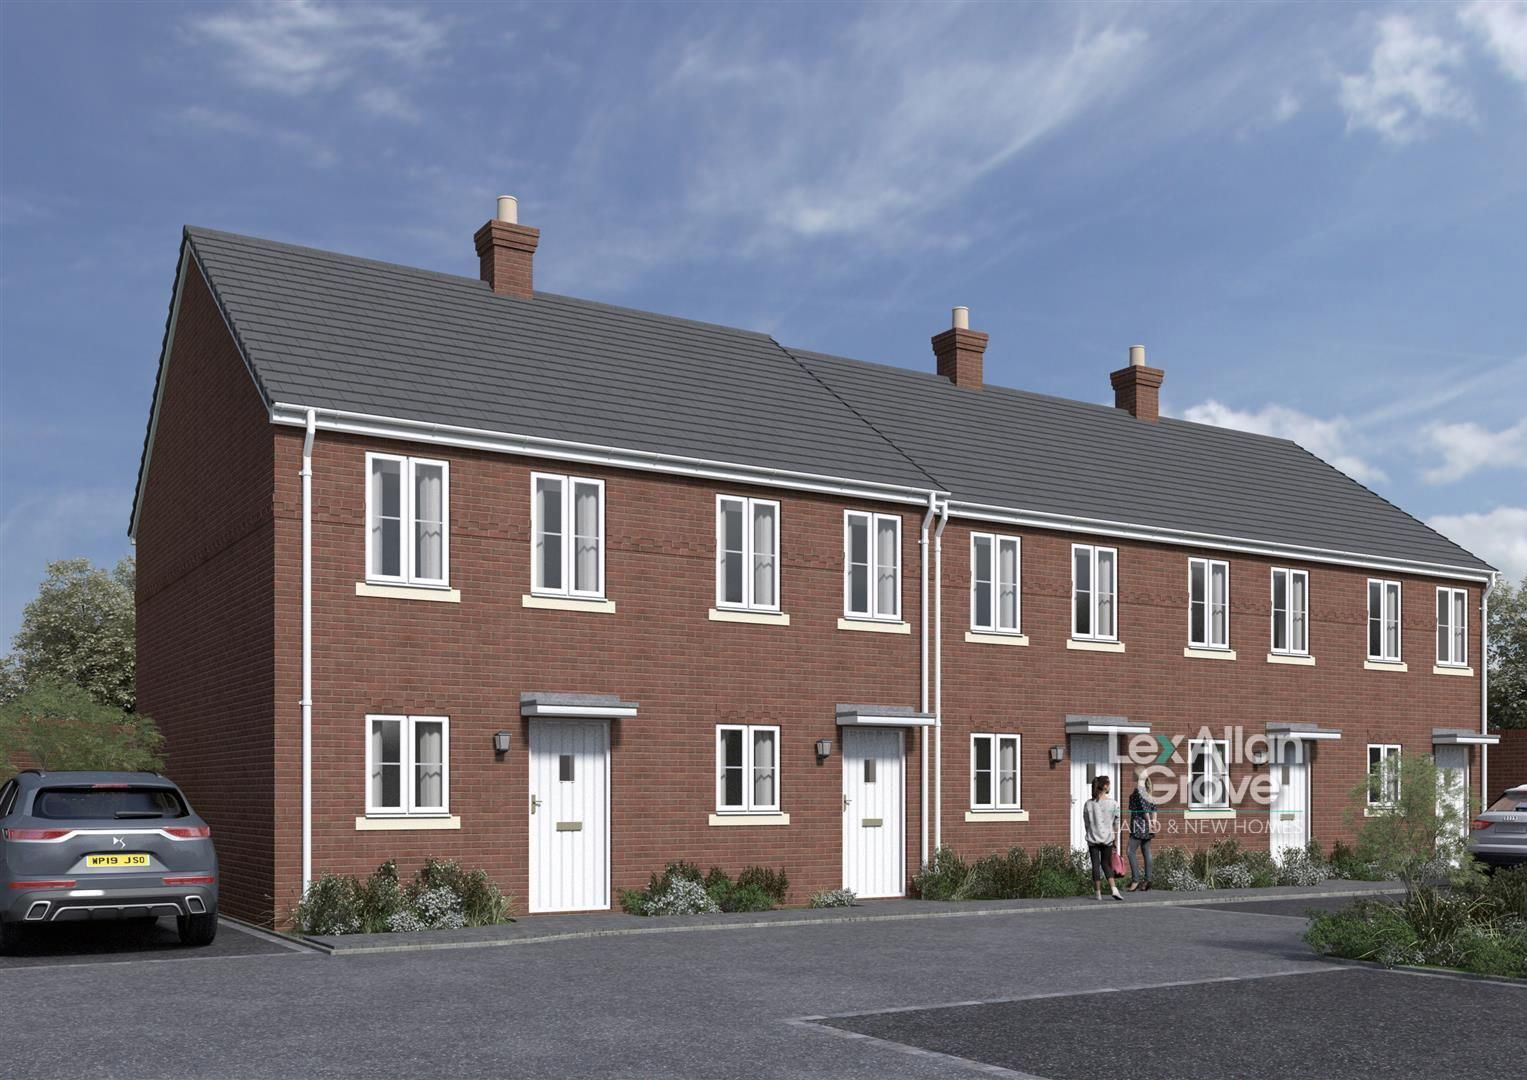 2 bed end-of-terrace for sale, DY8